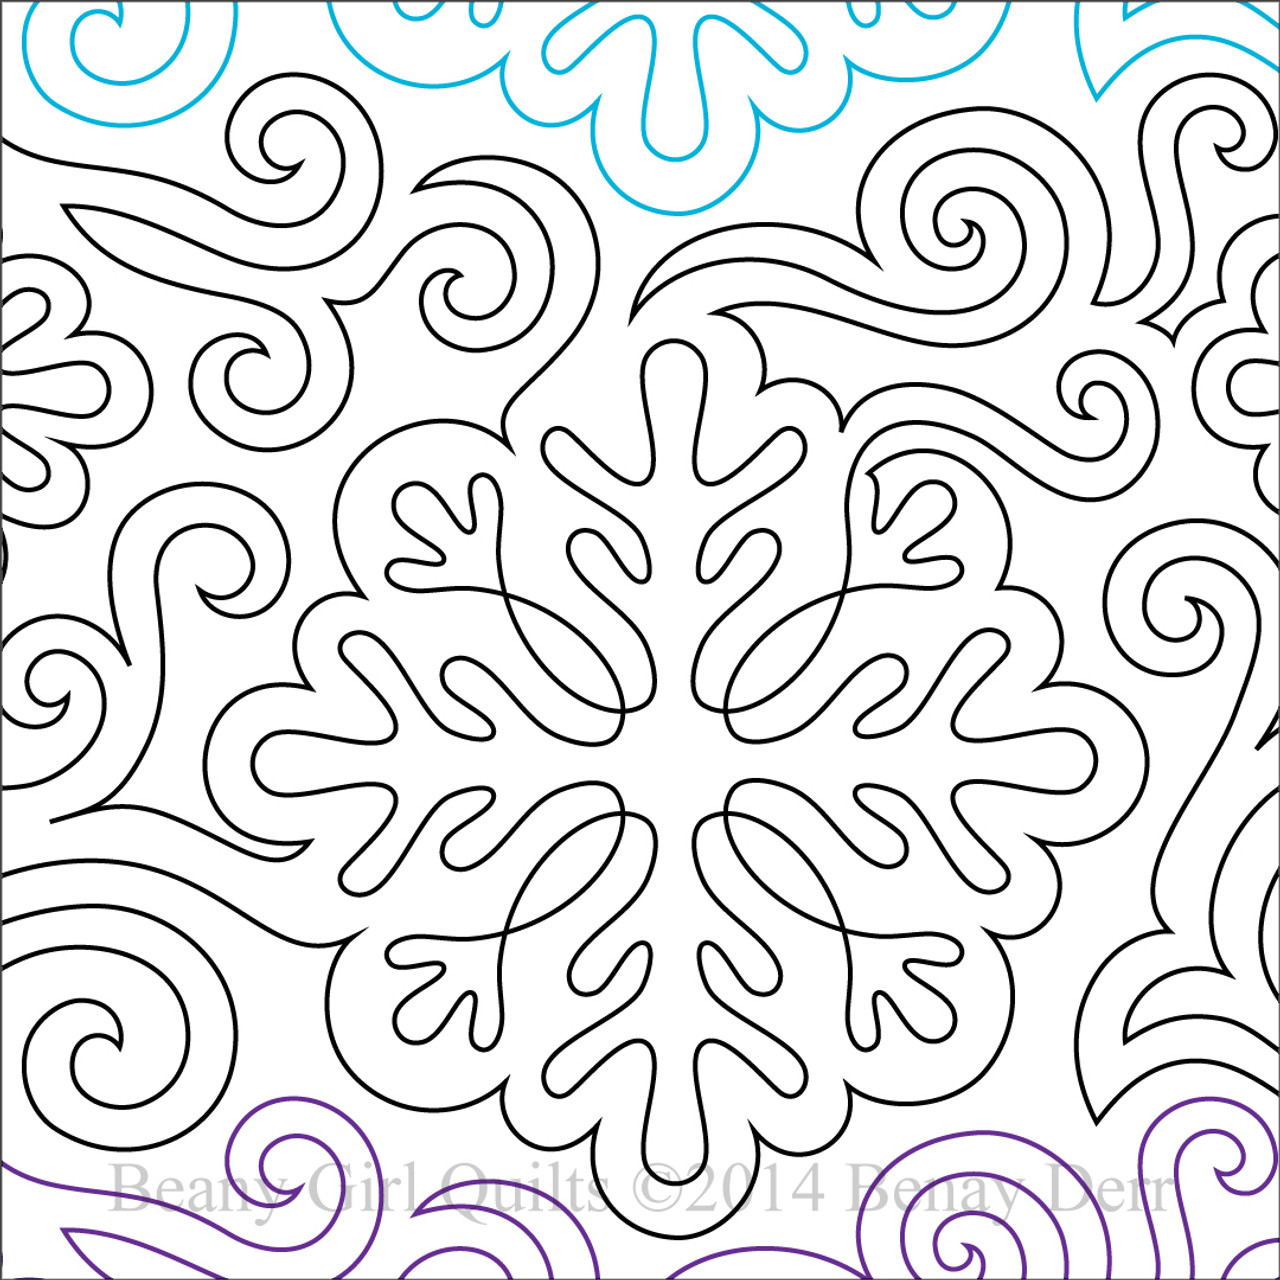 snowflake template for quilting  DANCING SNOWFLAKES | Paper Version